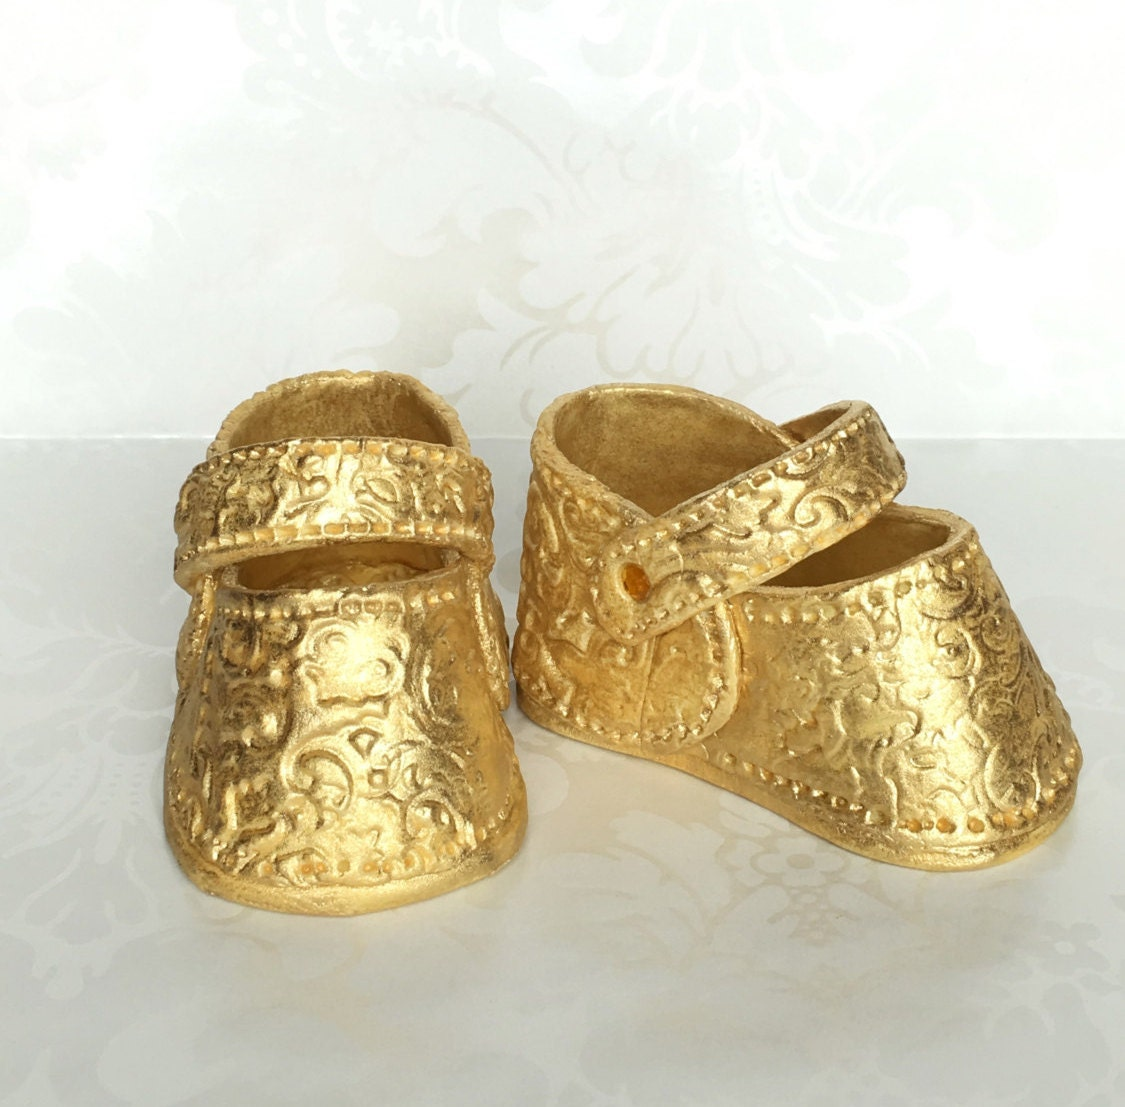 Celebrate the birth of a newborn with our incredibly cute baby charms, available in gold and silver.